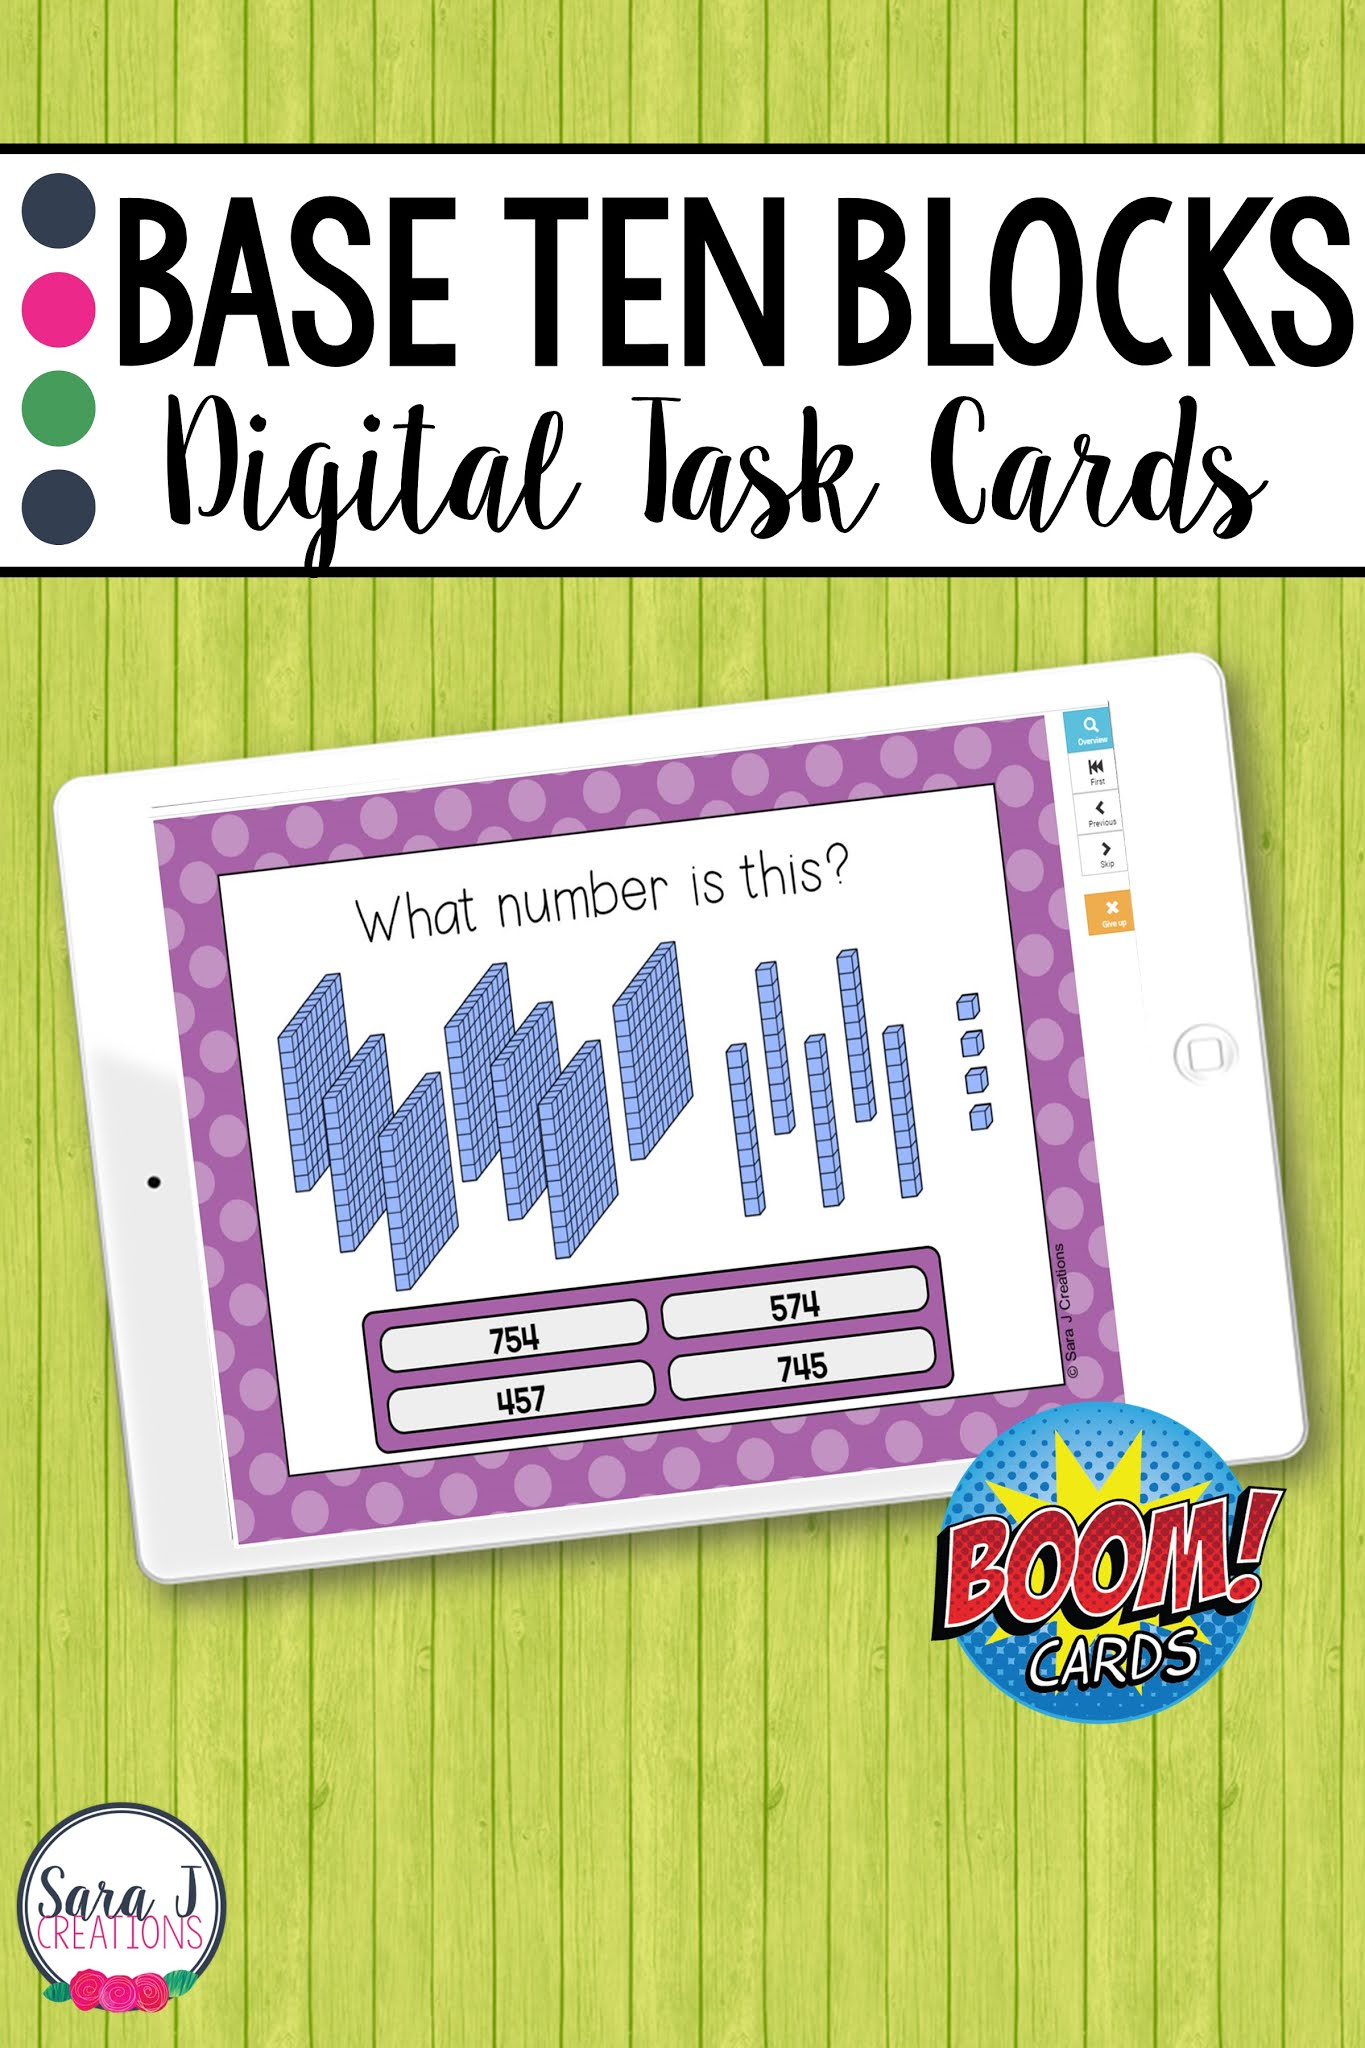 Make digital learning fun with these engaging, no prep Place Value Base Ten Blocks Boom Cards. These digital task cards are perfect for remote learning but can also be used in a traditional classroom on devices such as ipads, tables, Chromebooks, smartboards, and more. Designed for 2nd grade, these place value task cards include numbers up to 1,000.